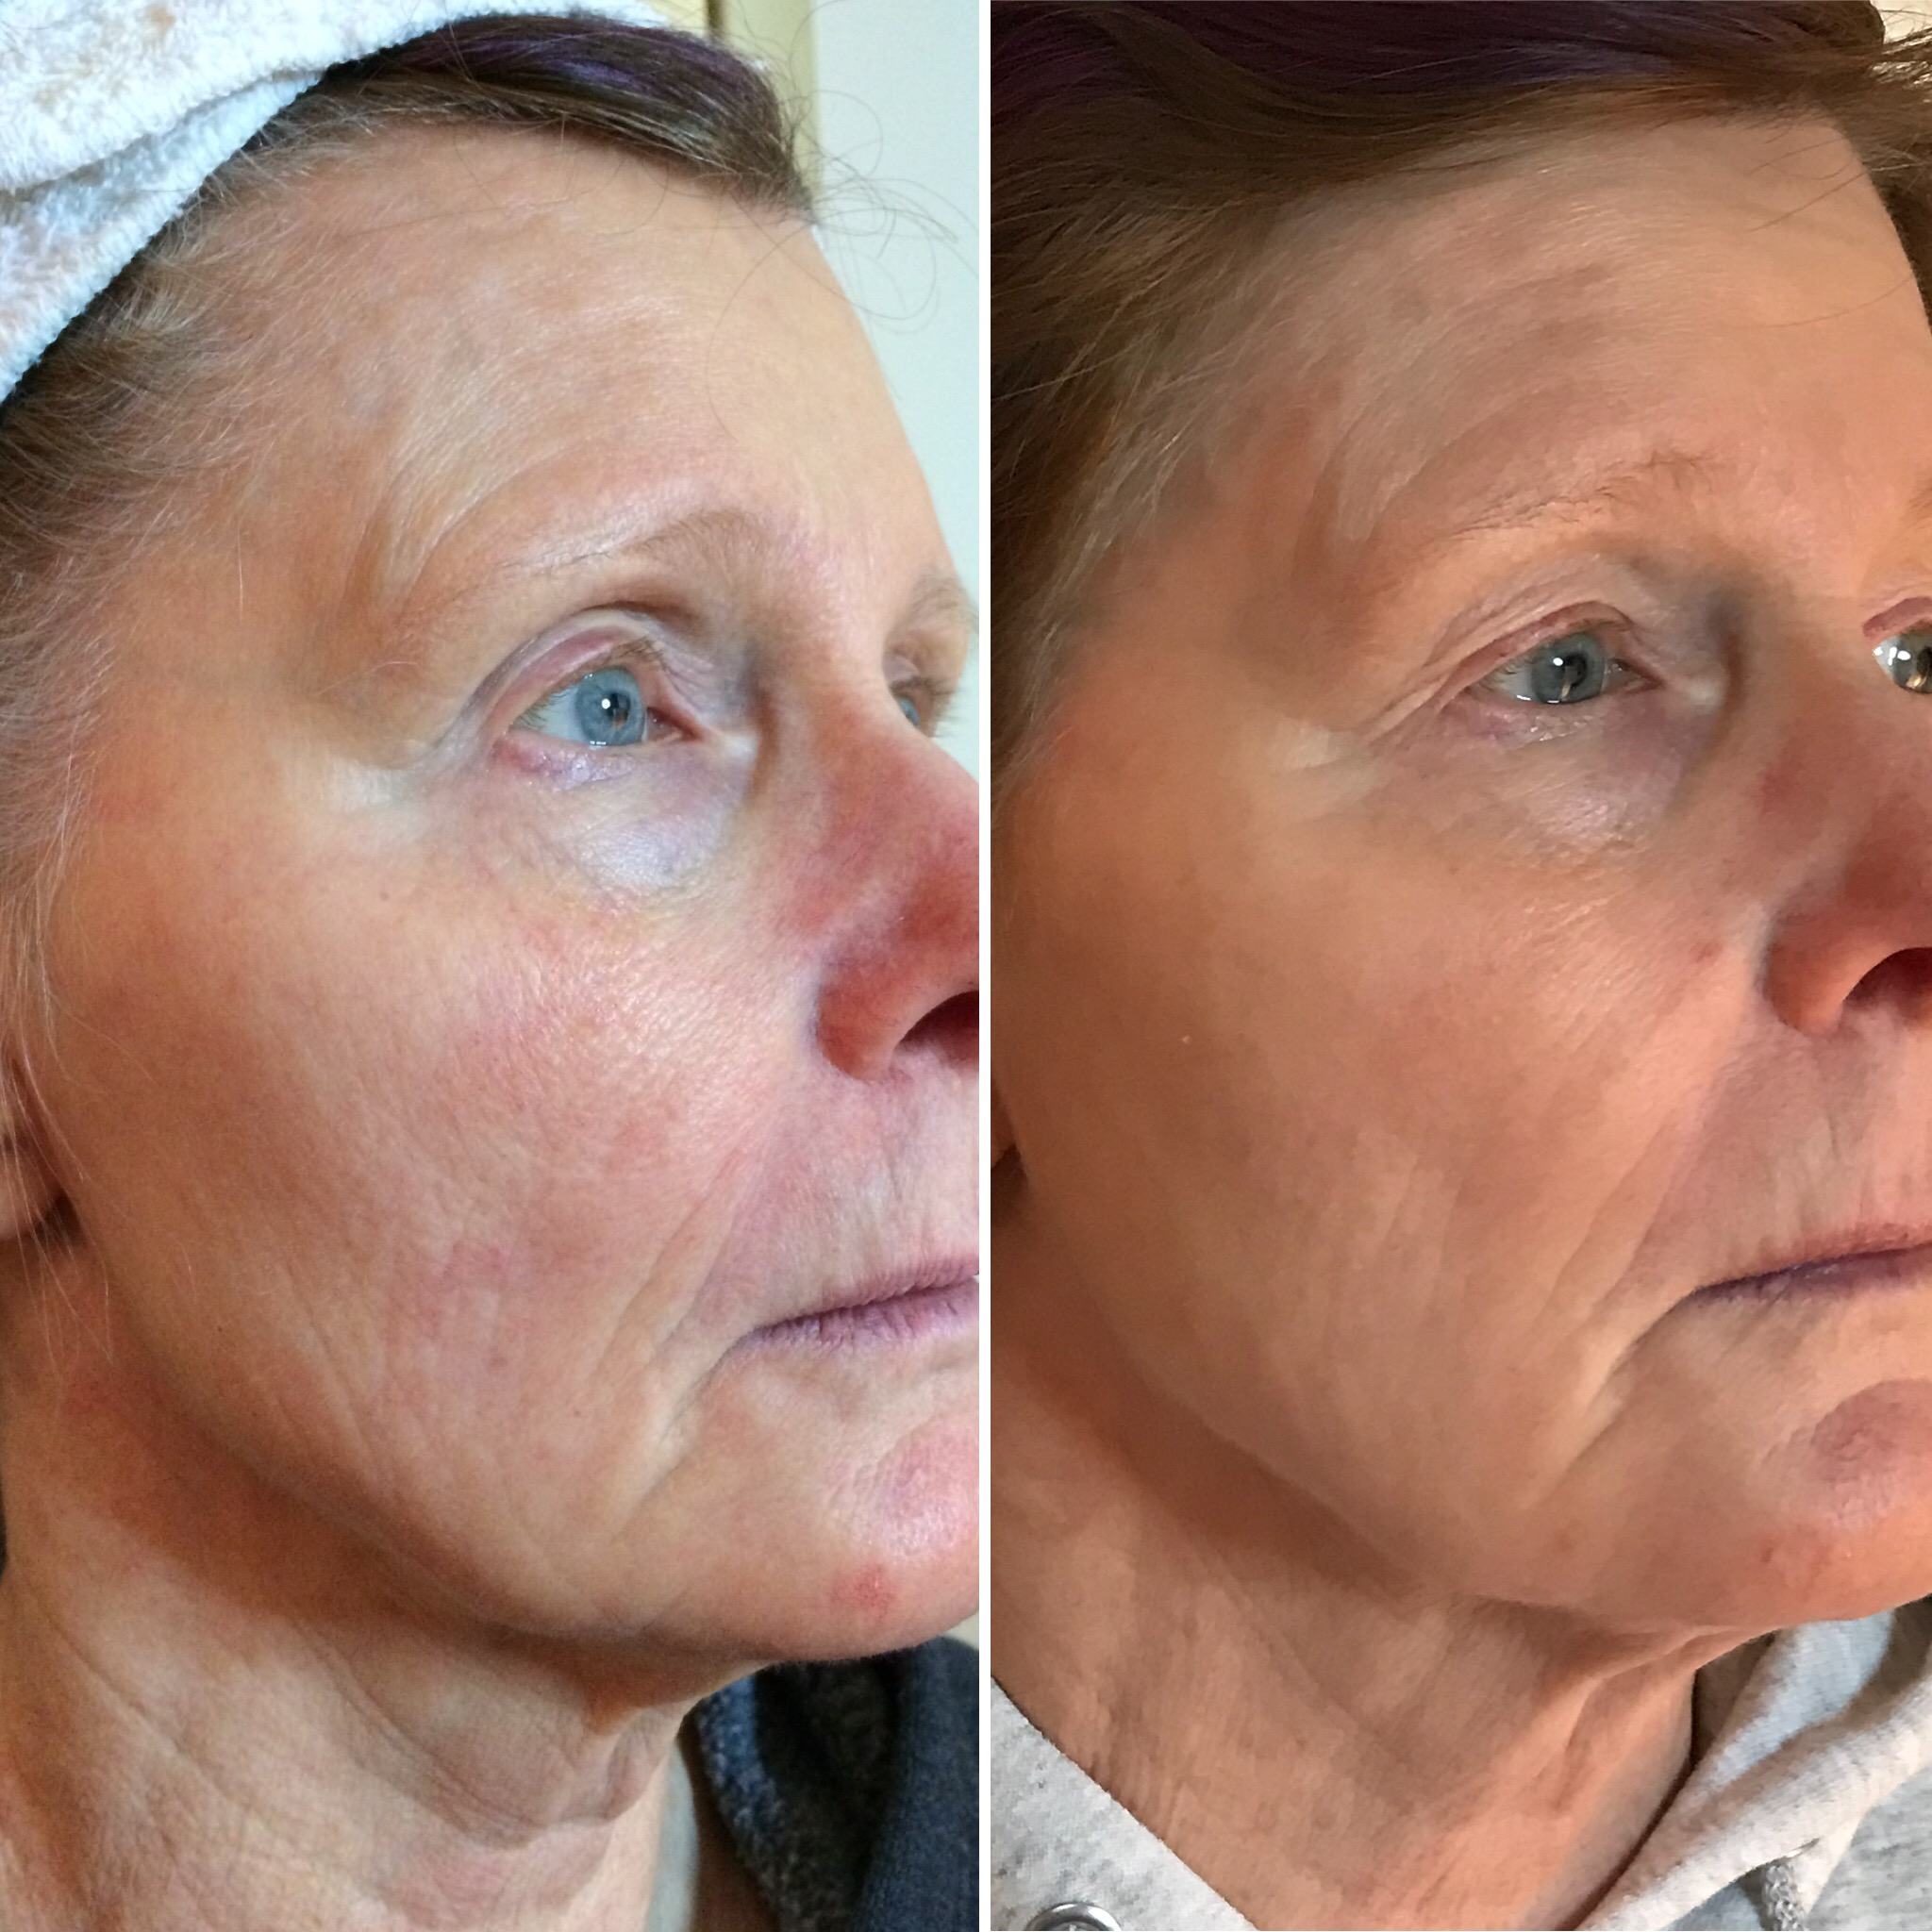 This client had over a year of TAMA treatments and diligent homecare with Osmosis and Roccoco Botanicals. Her skin barrier is repaired and healthier over all, and her face is more contoured.